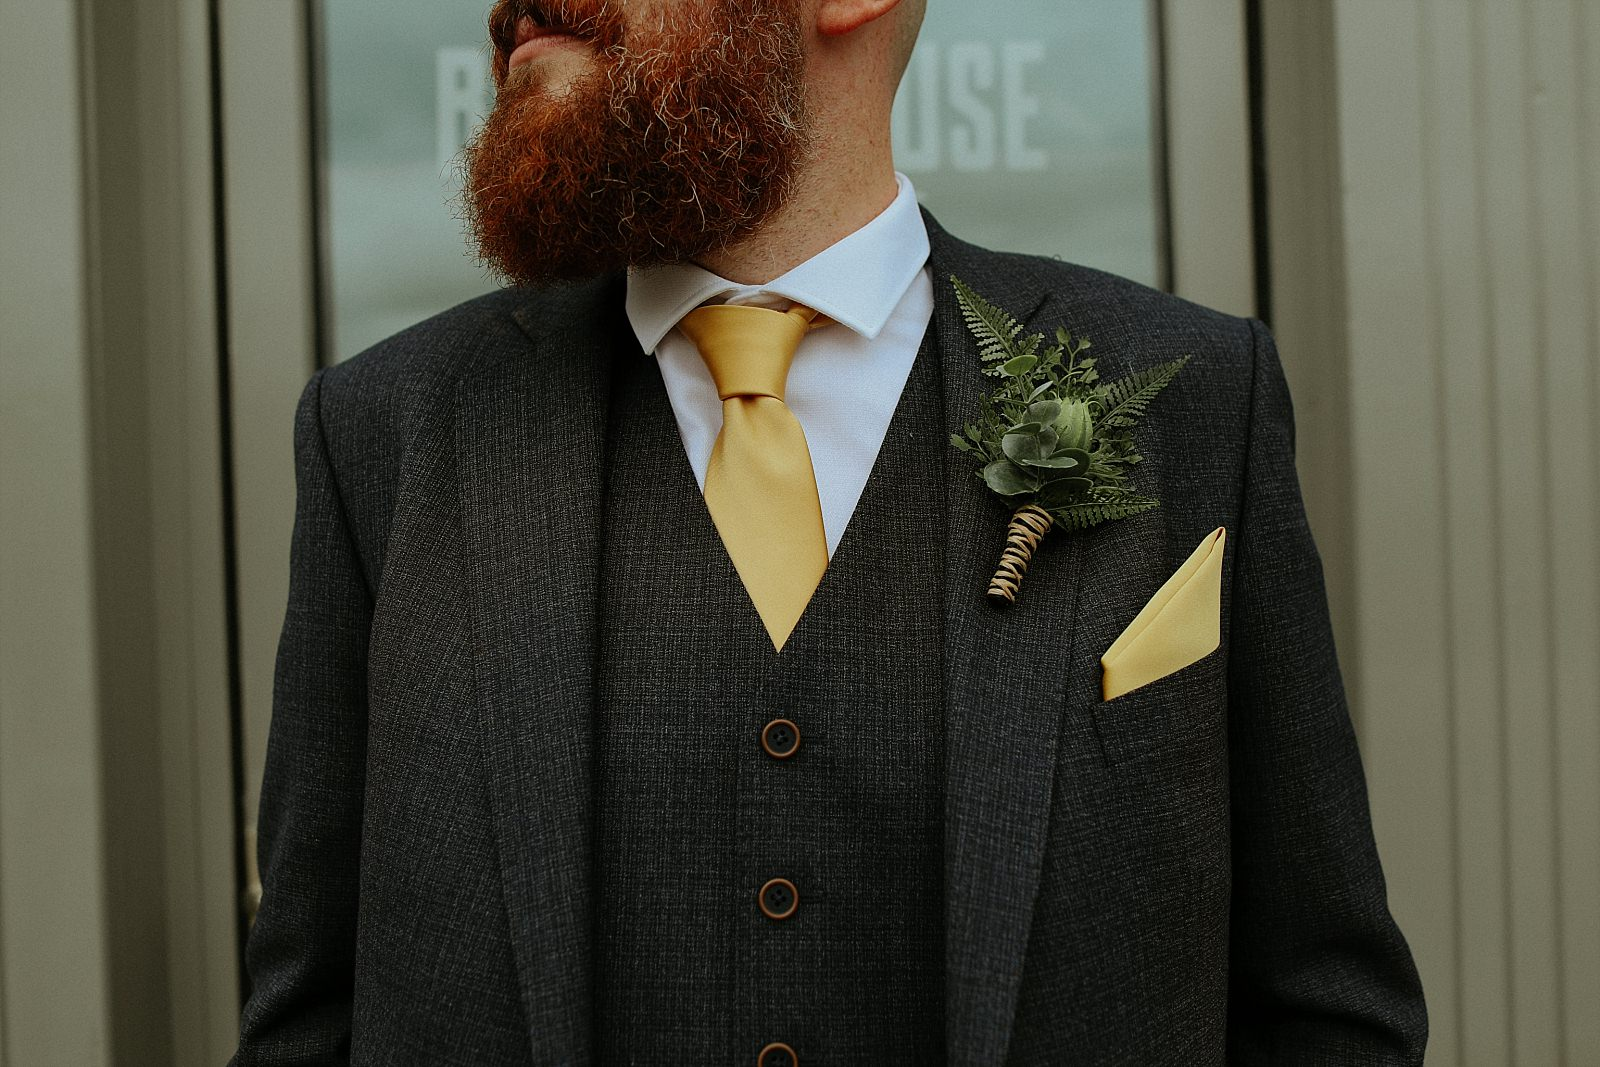 hop button hole and yellow tie for the groom